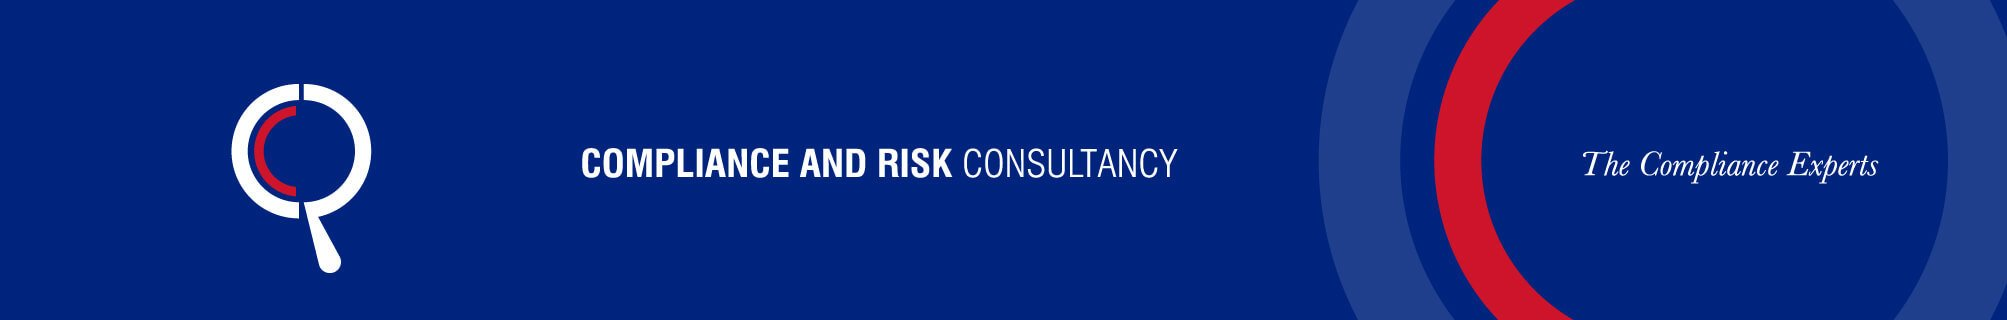 compliance experts logo